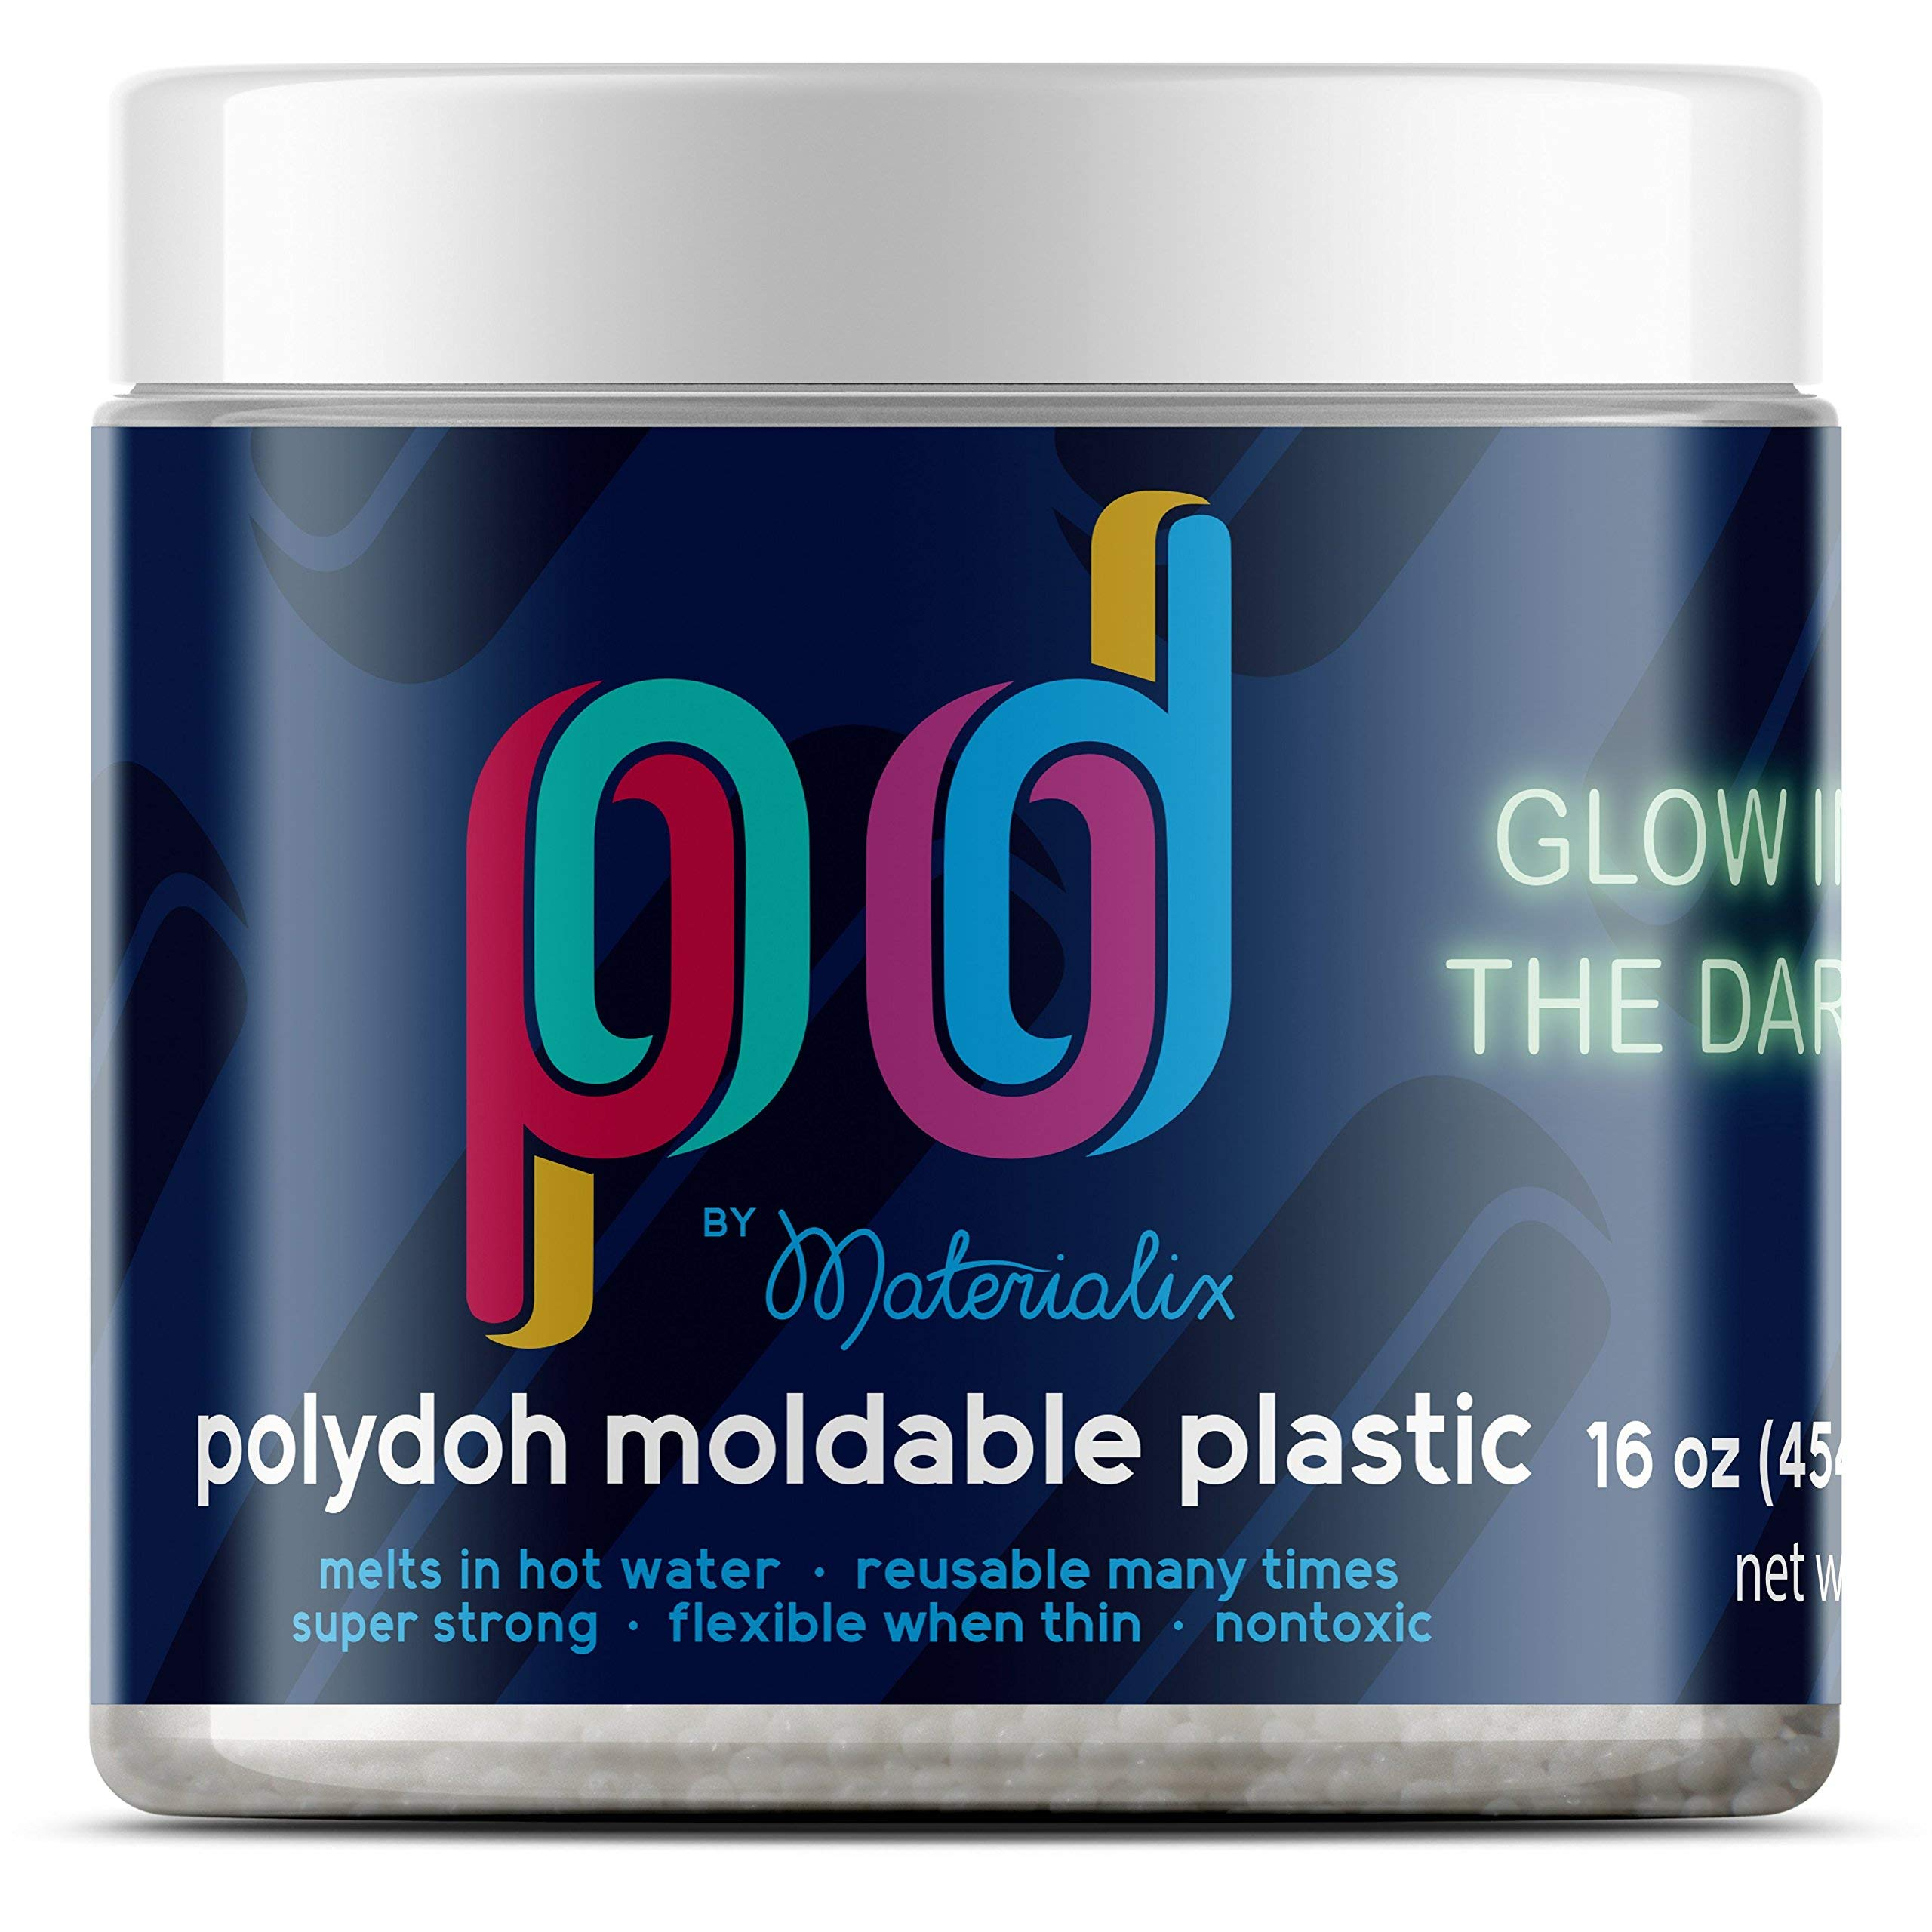 Polydoh Glow in The Dark moldable Plastic, 16oz tub [Polymorph, plastimake] by Materialix